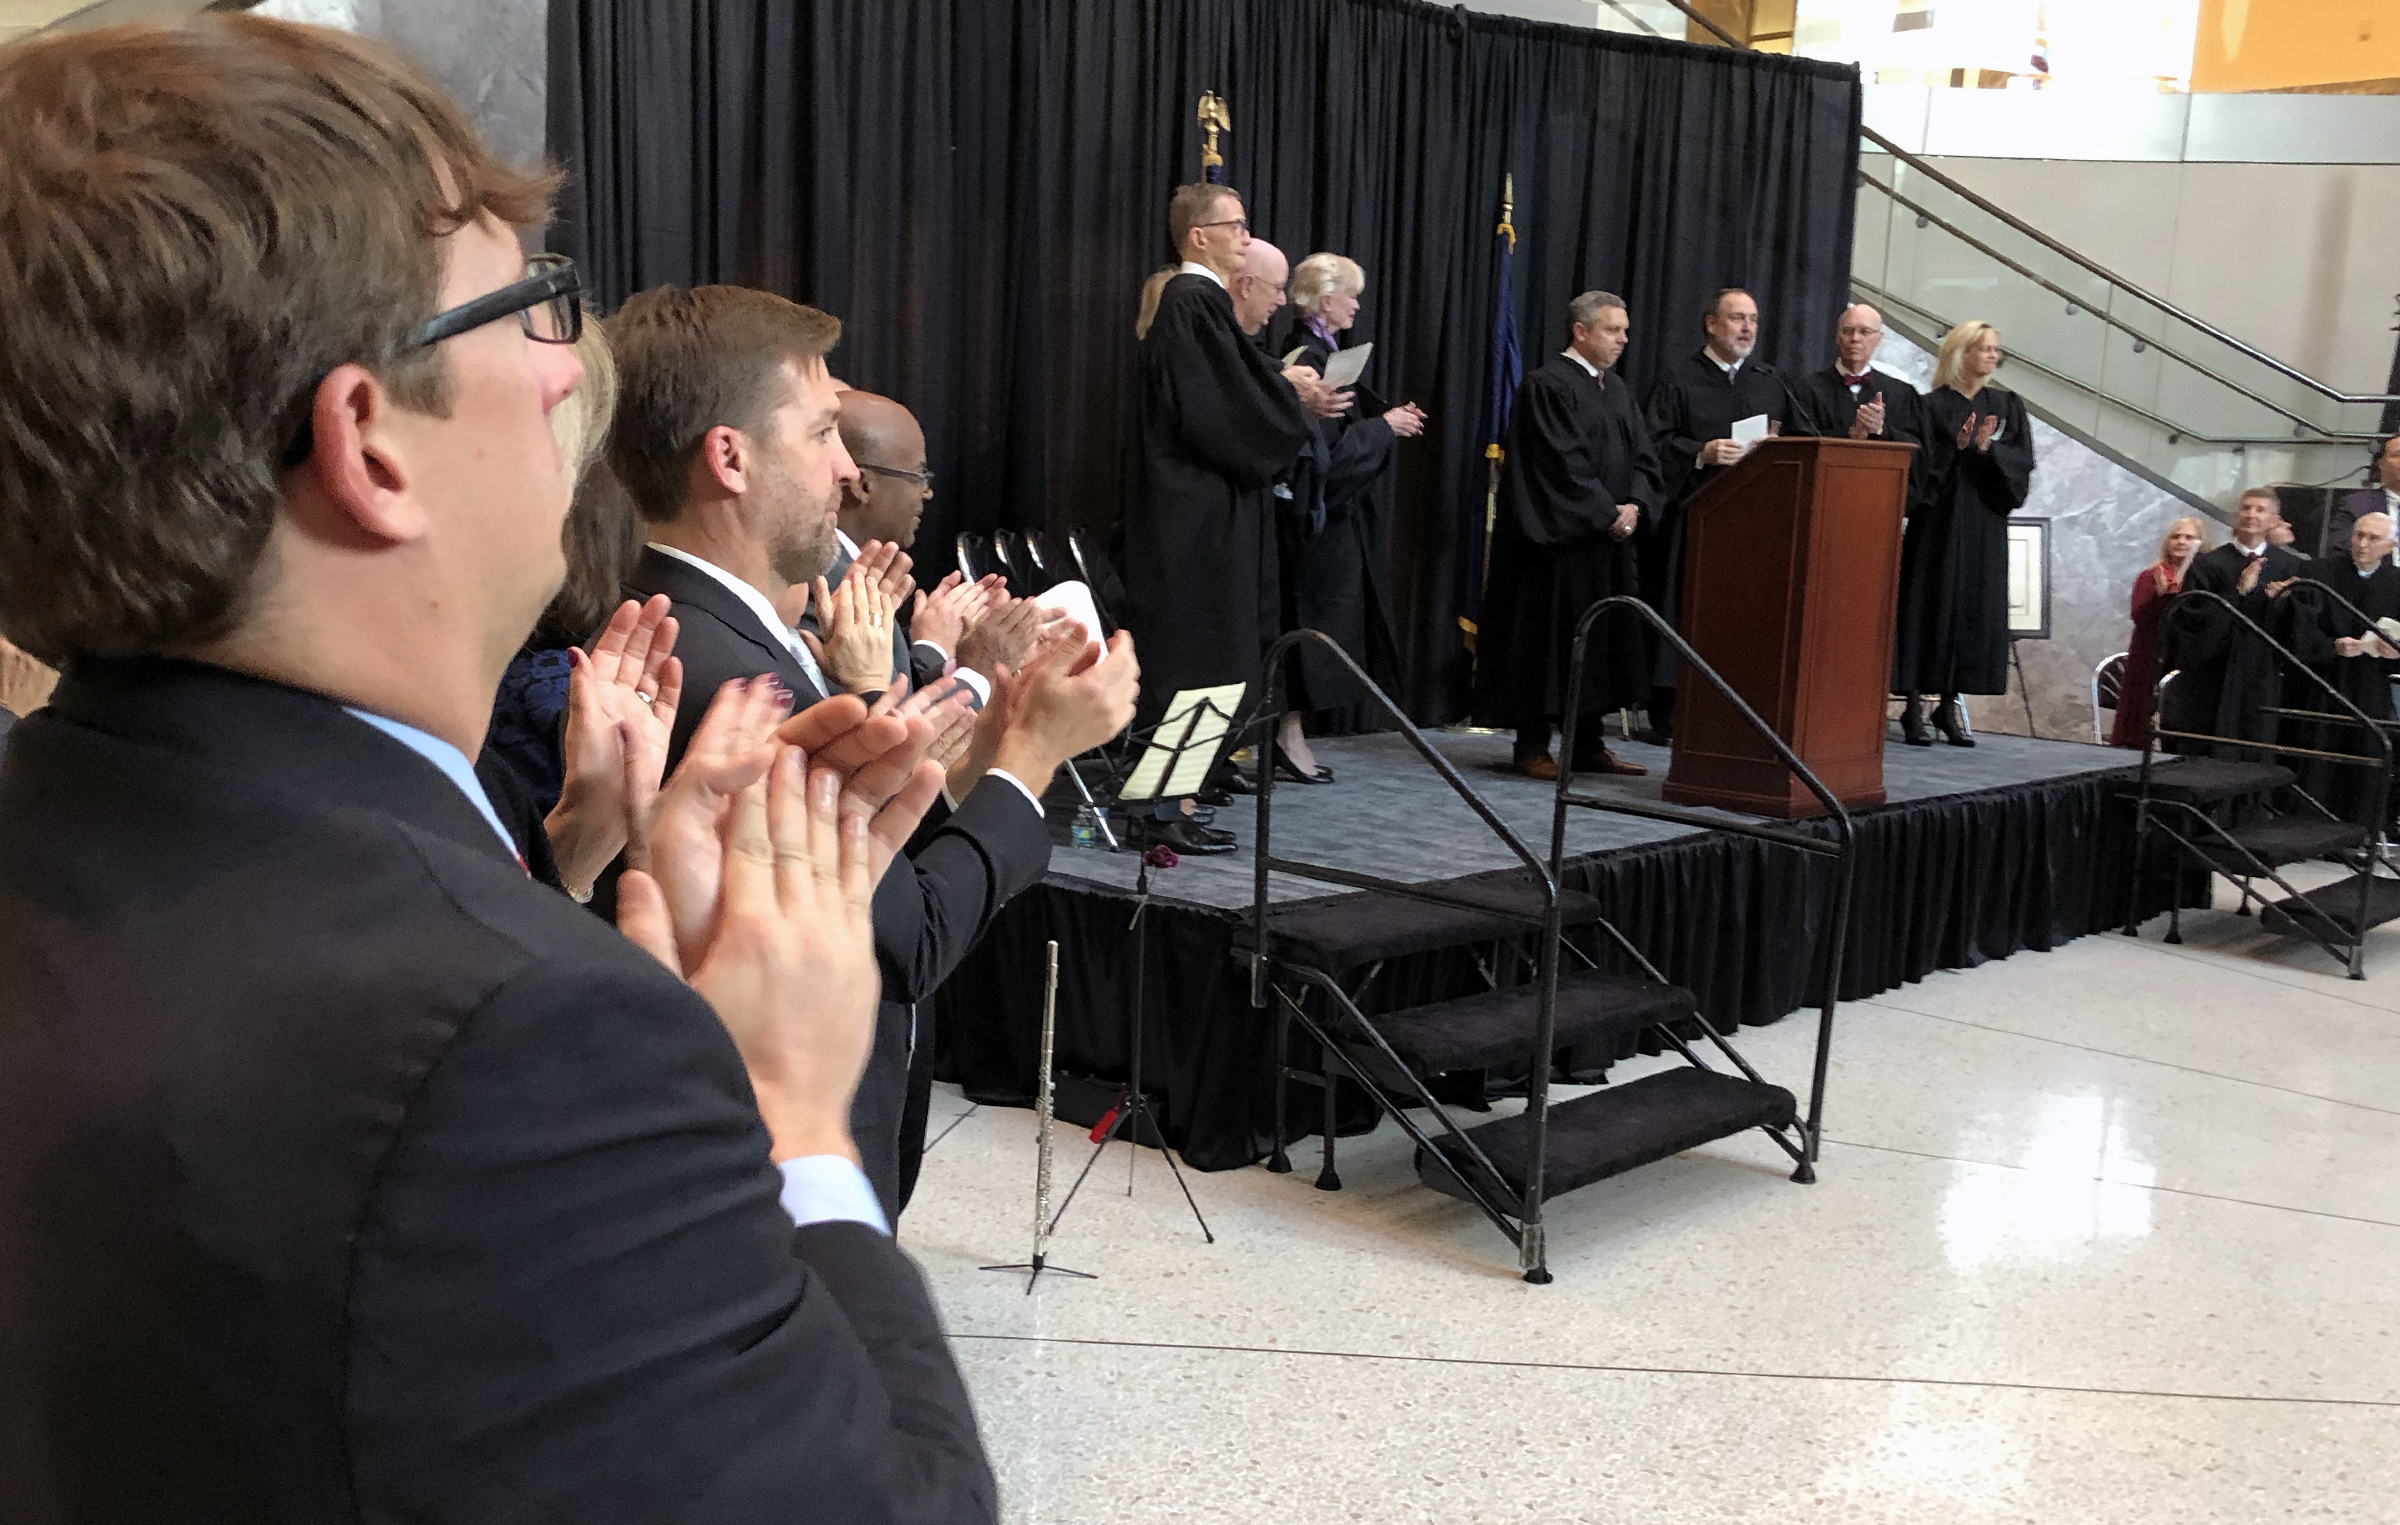 Brian C. Buescher receives applause during his investiture ceremony at the Hruska Federal Courthouse on Friday, Nov. 15, 2019. (Photo by Scott Stewart)